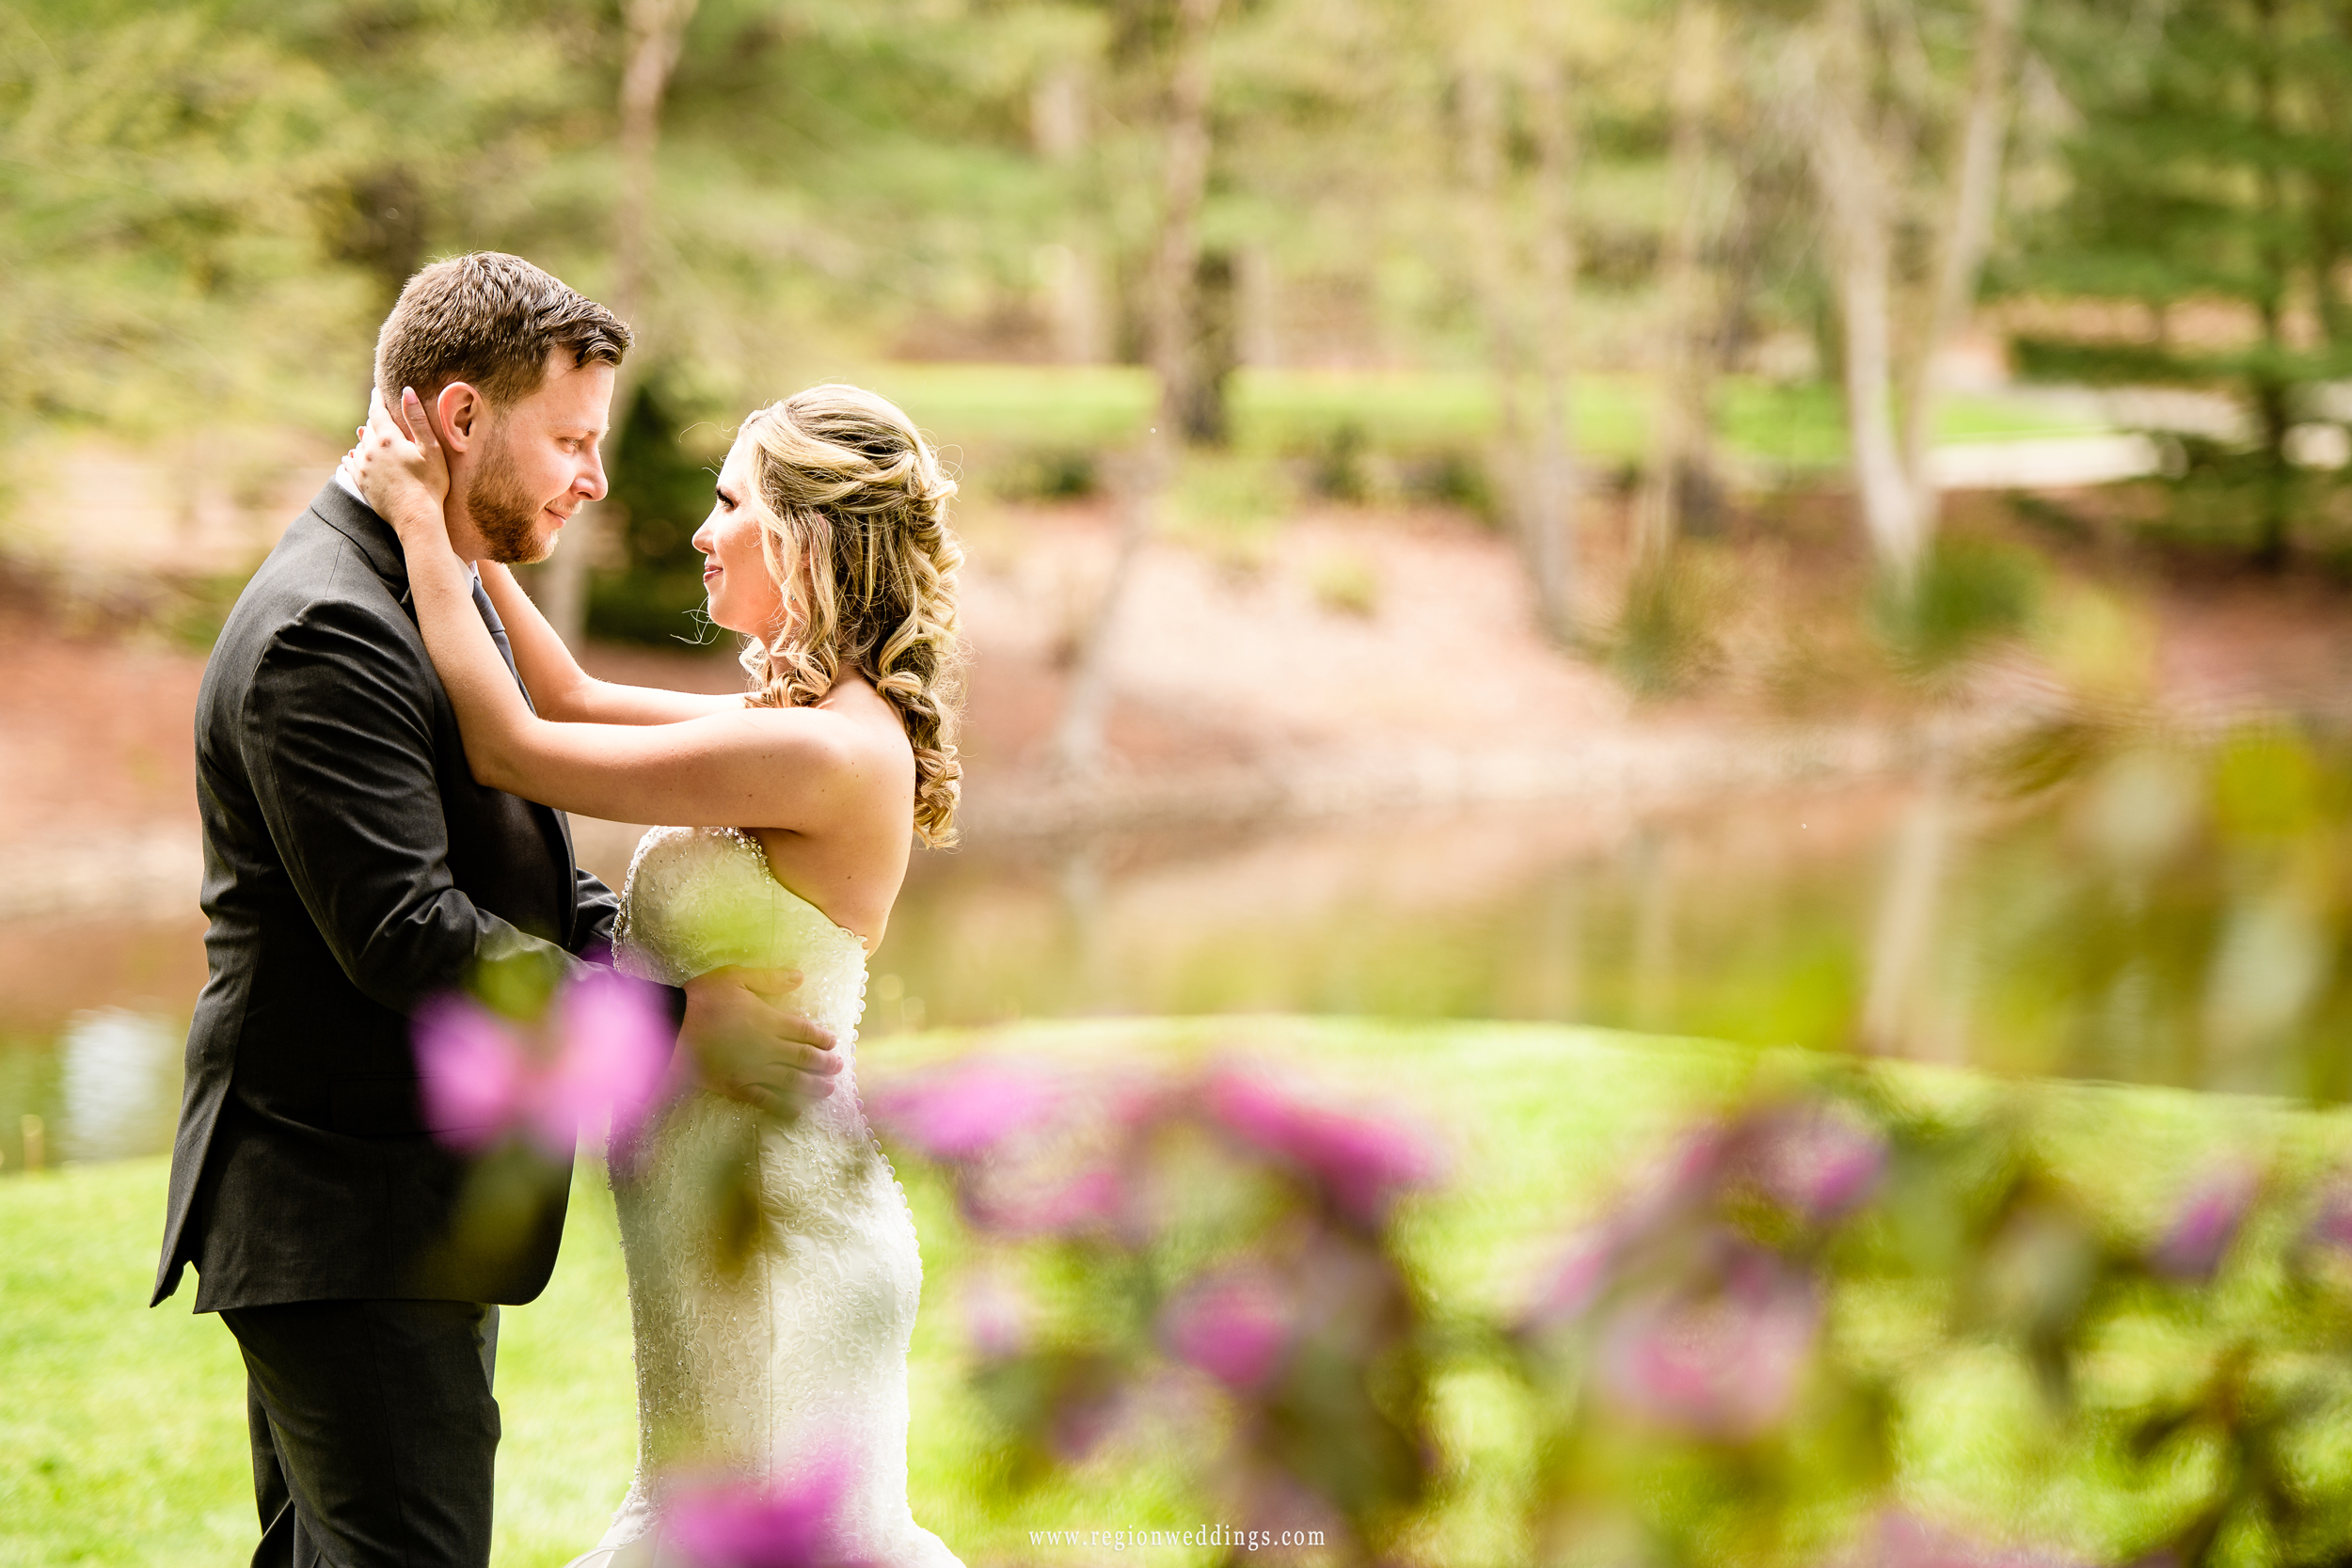 A loving moment between newlyweds at The Pavilion at Sandy Pines.